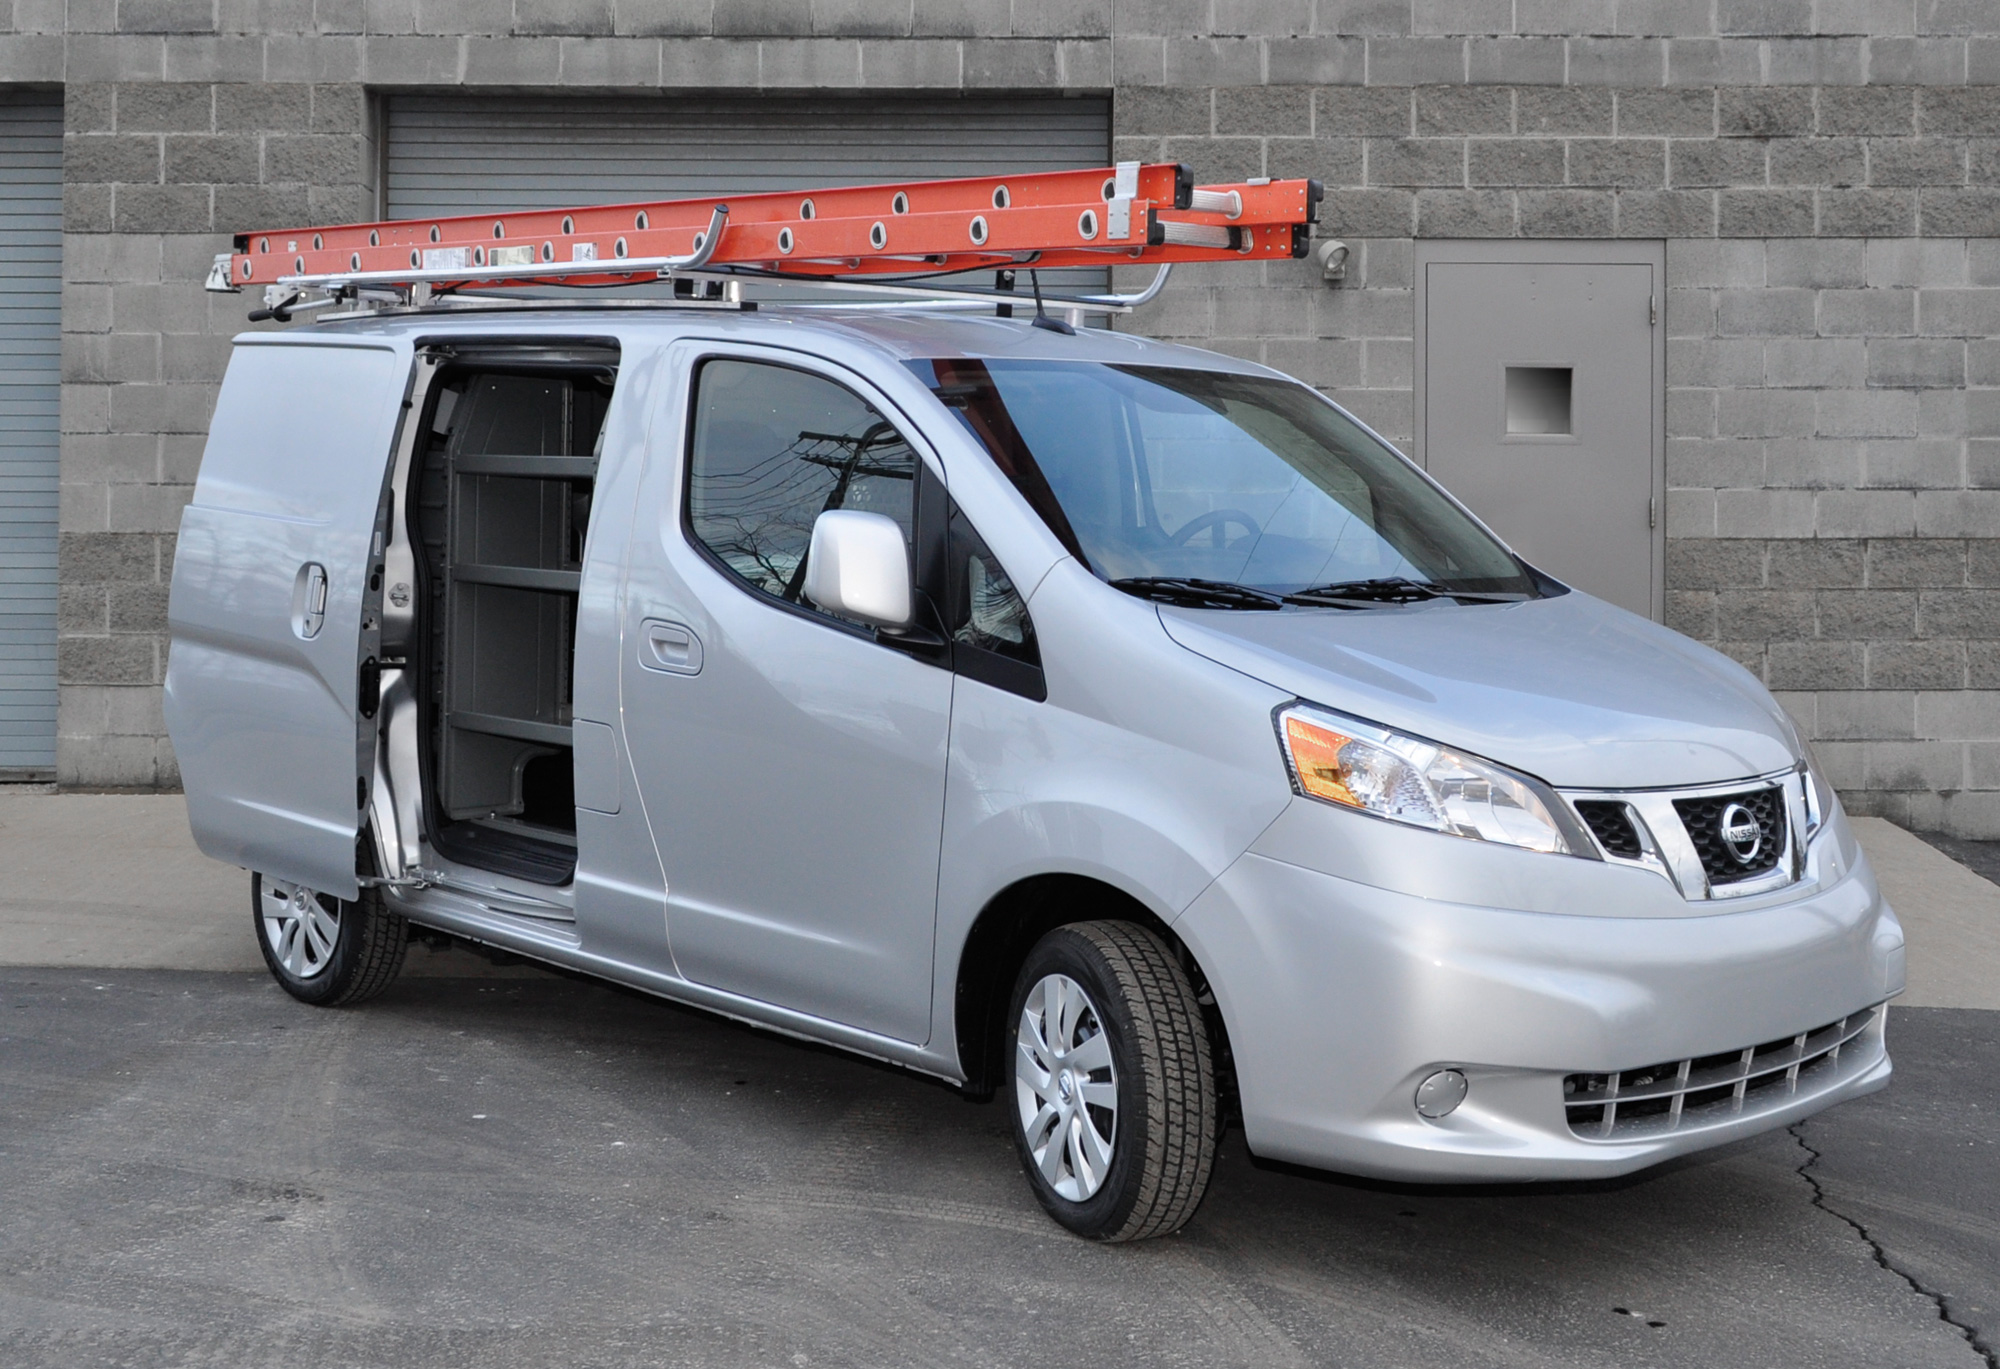 Nissan Cargo Van >> Adrian Steel Launches Product Line for the Nissan NV200 Compact Cargo Van, Cargo Management ...